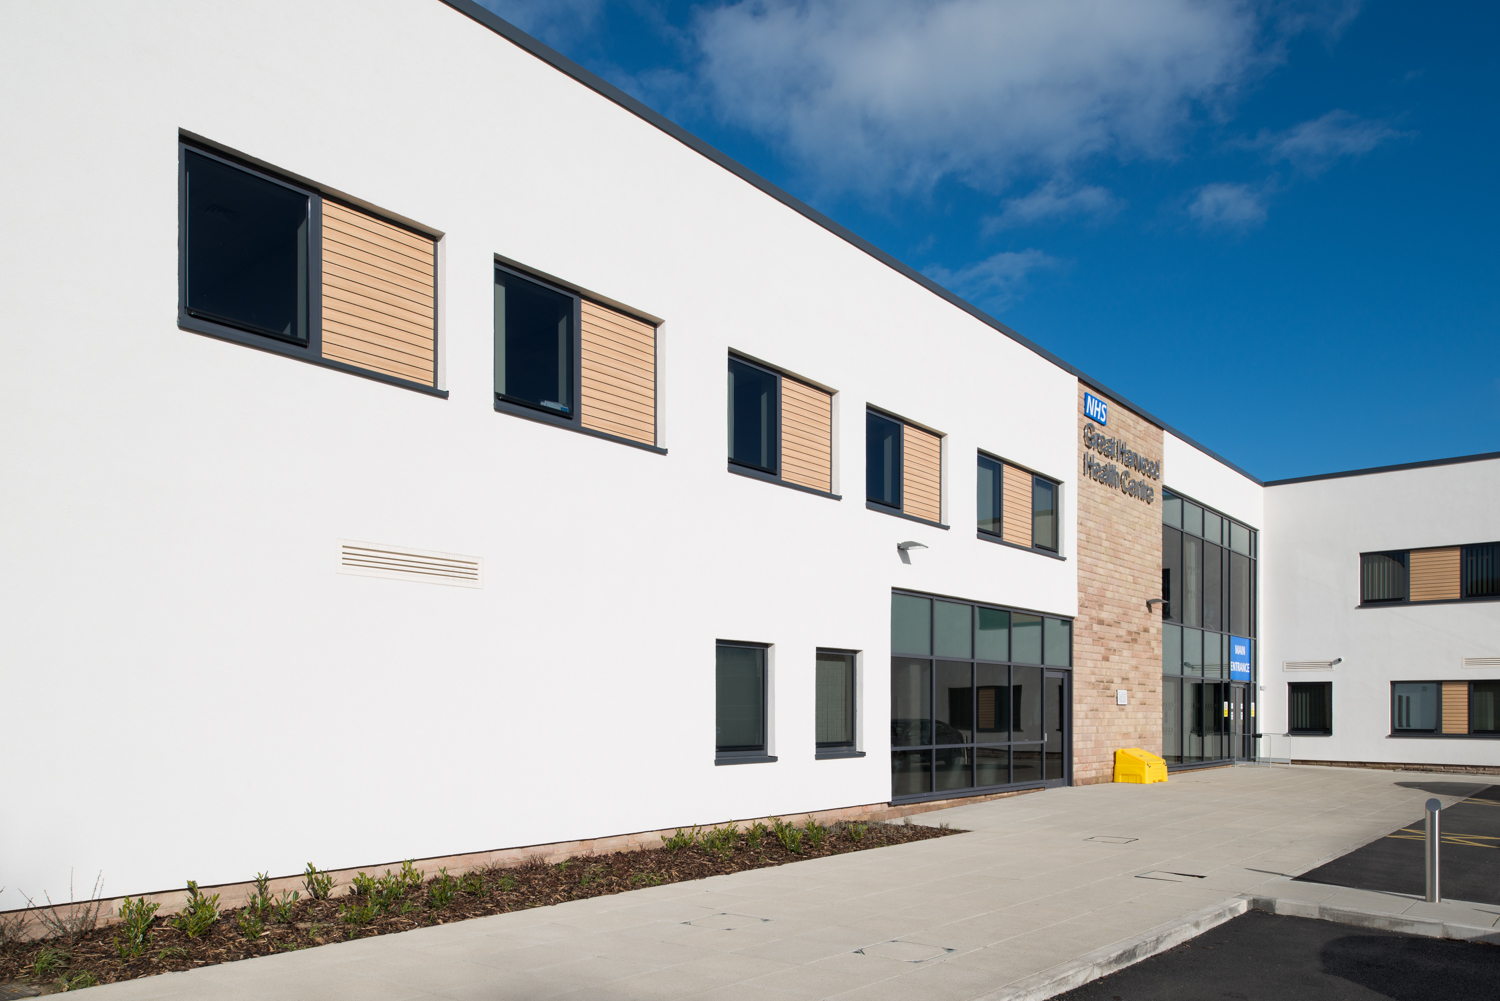 NHS Great Harwood Health Centre | Architects: IBI Nightingale | Main Contractor: Eric Wright Construction